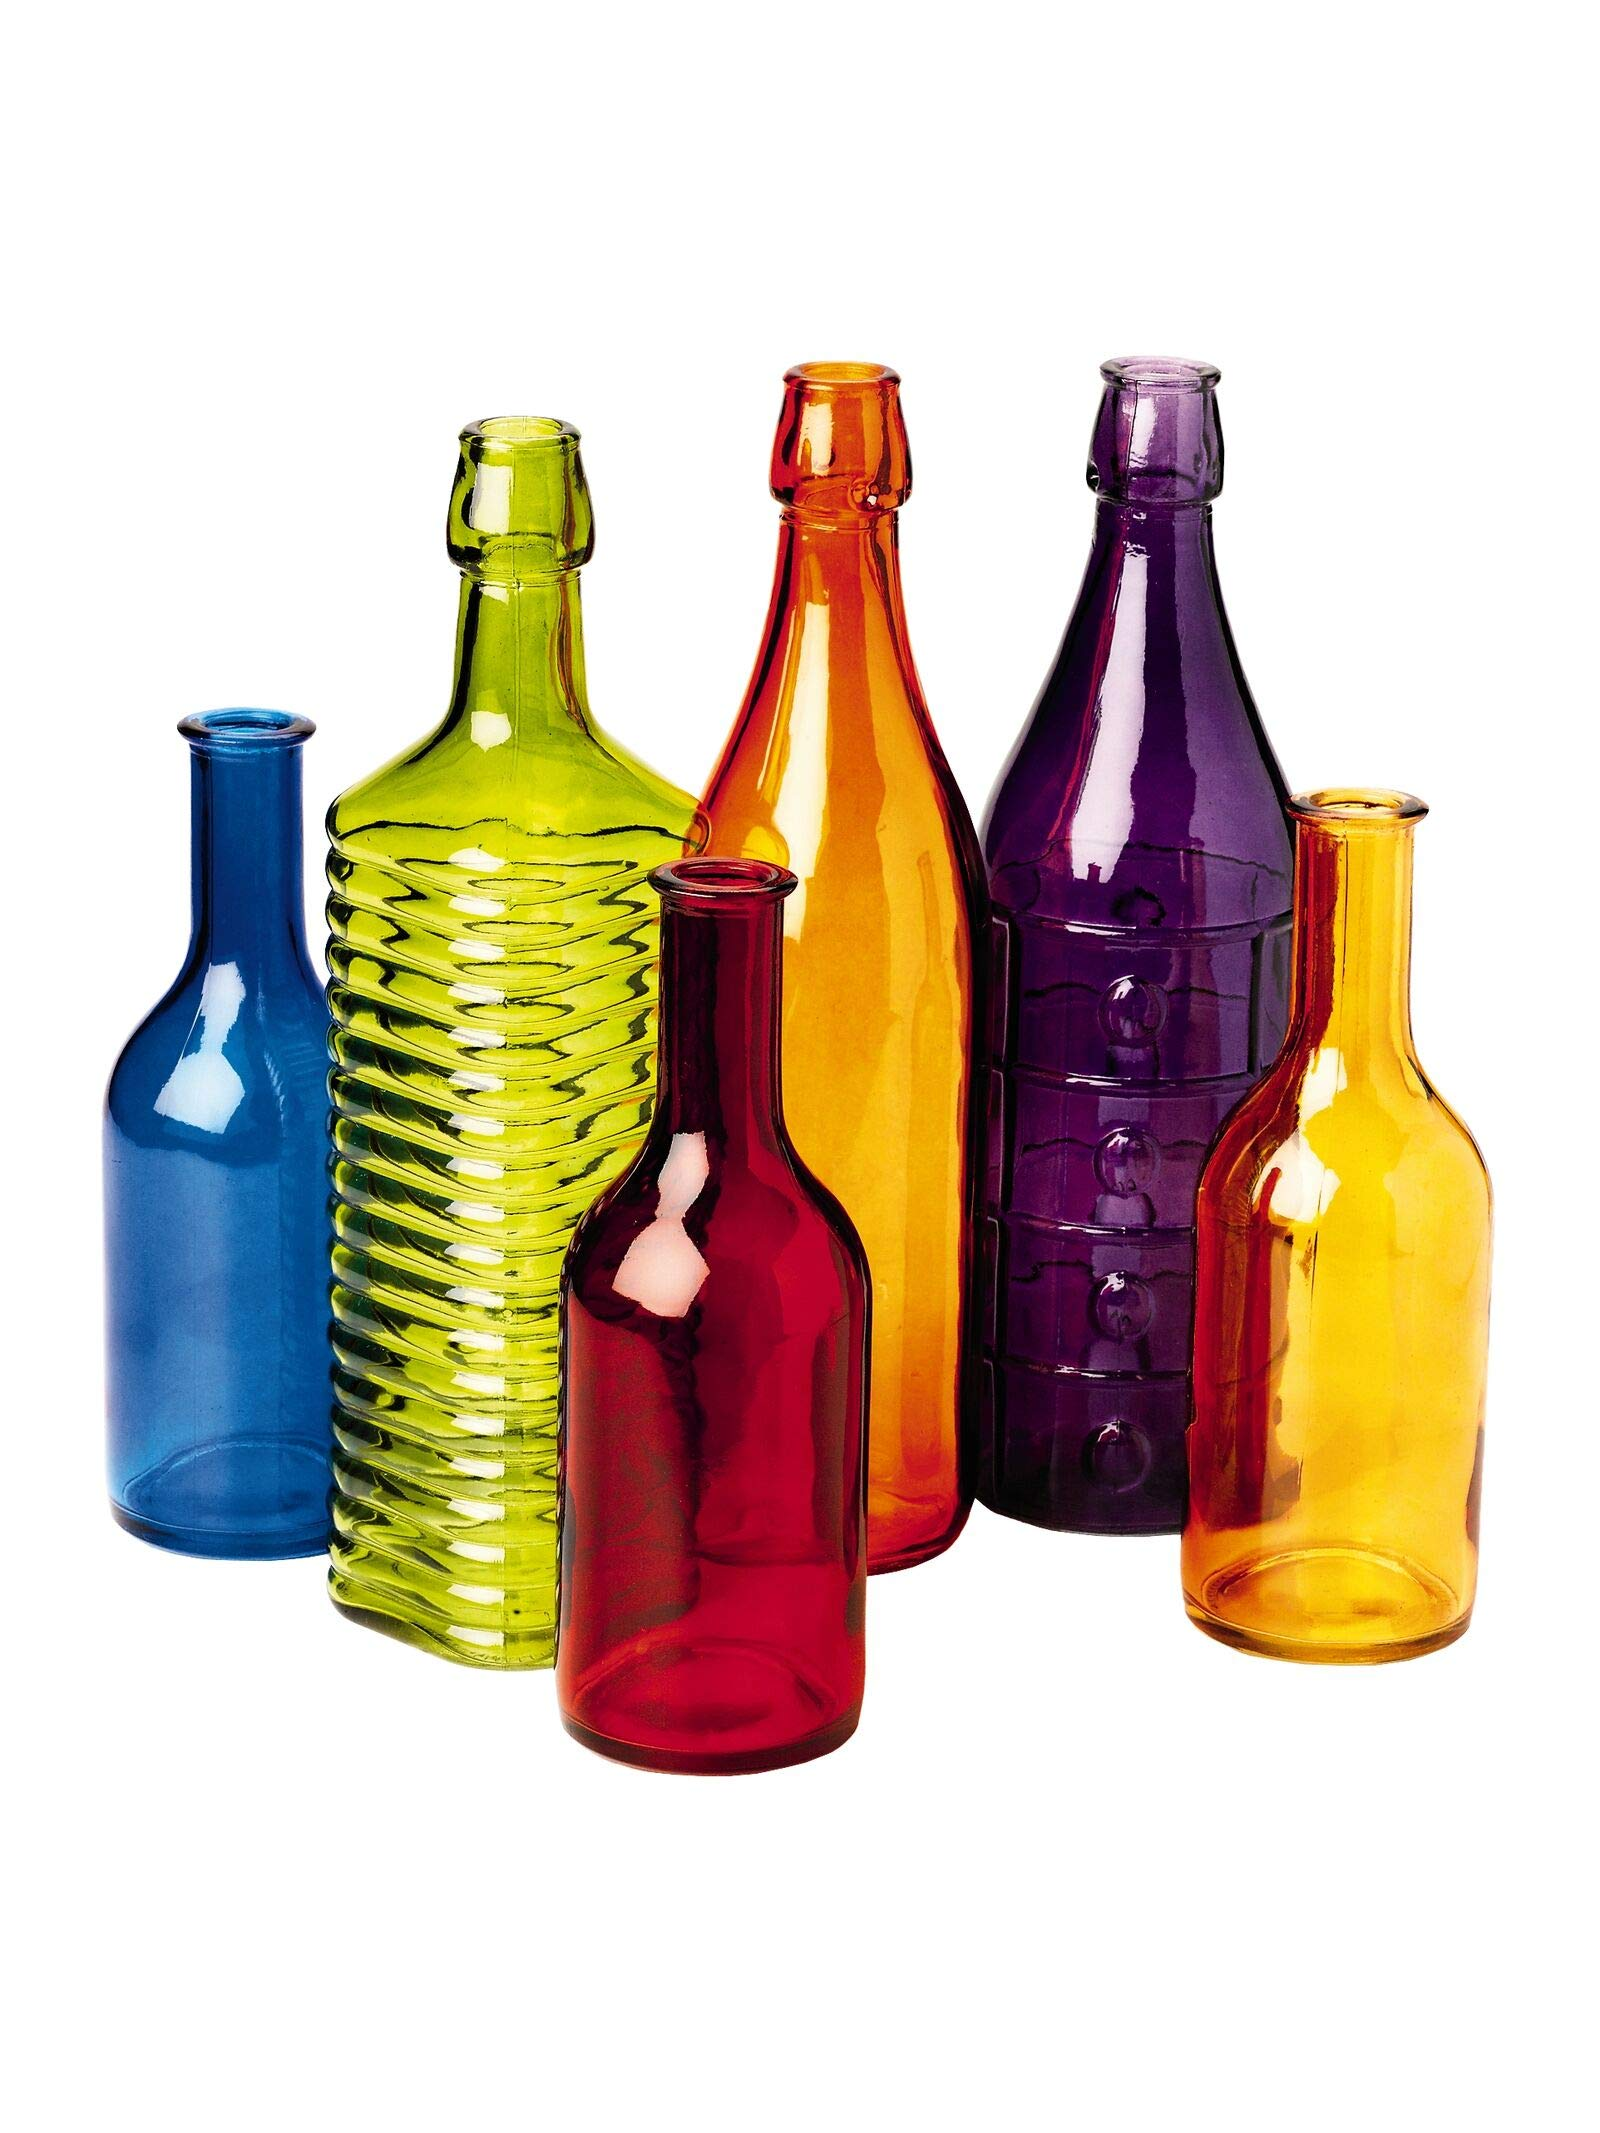 Colored Bottle Tree Bottles for Outdoor Garden Decor, Set of 6